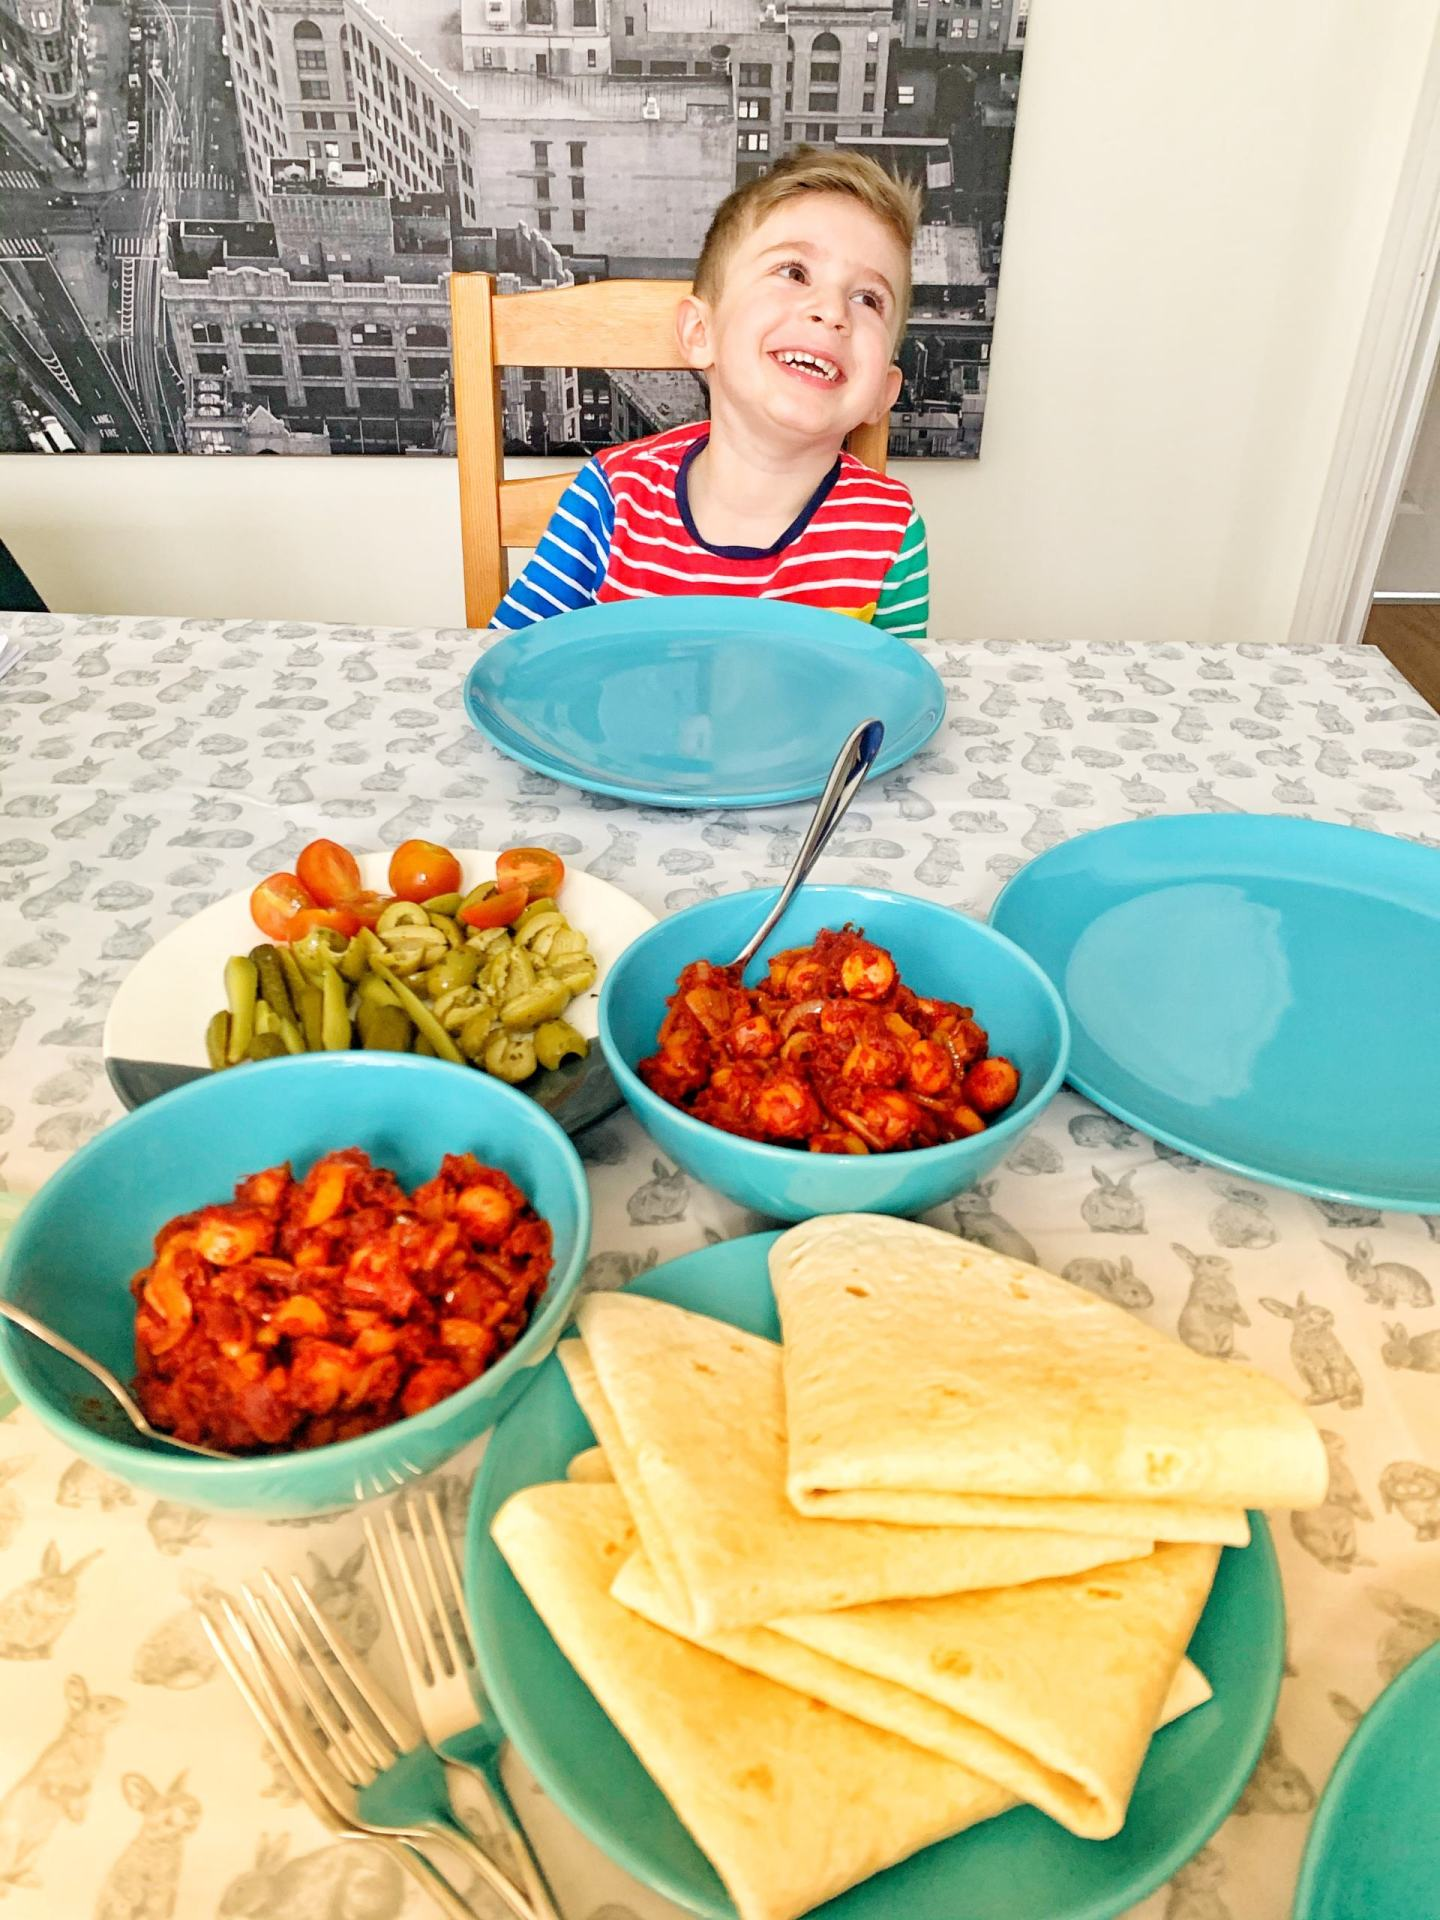 Toddler with sosis Bandari in front of him on dining table